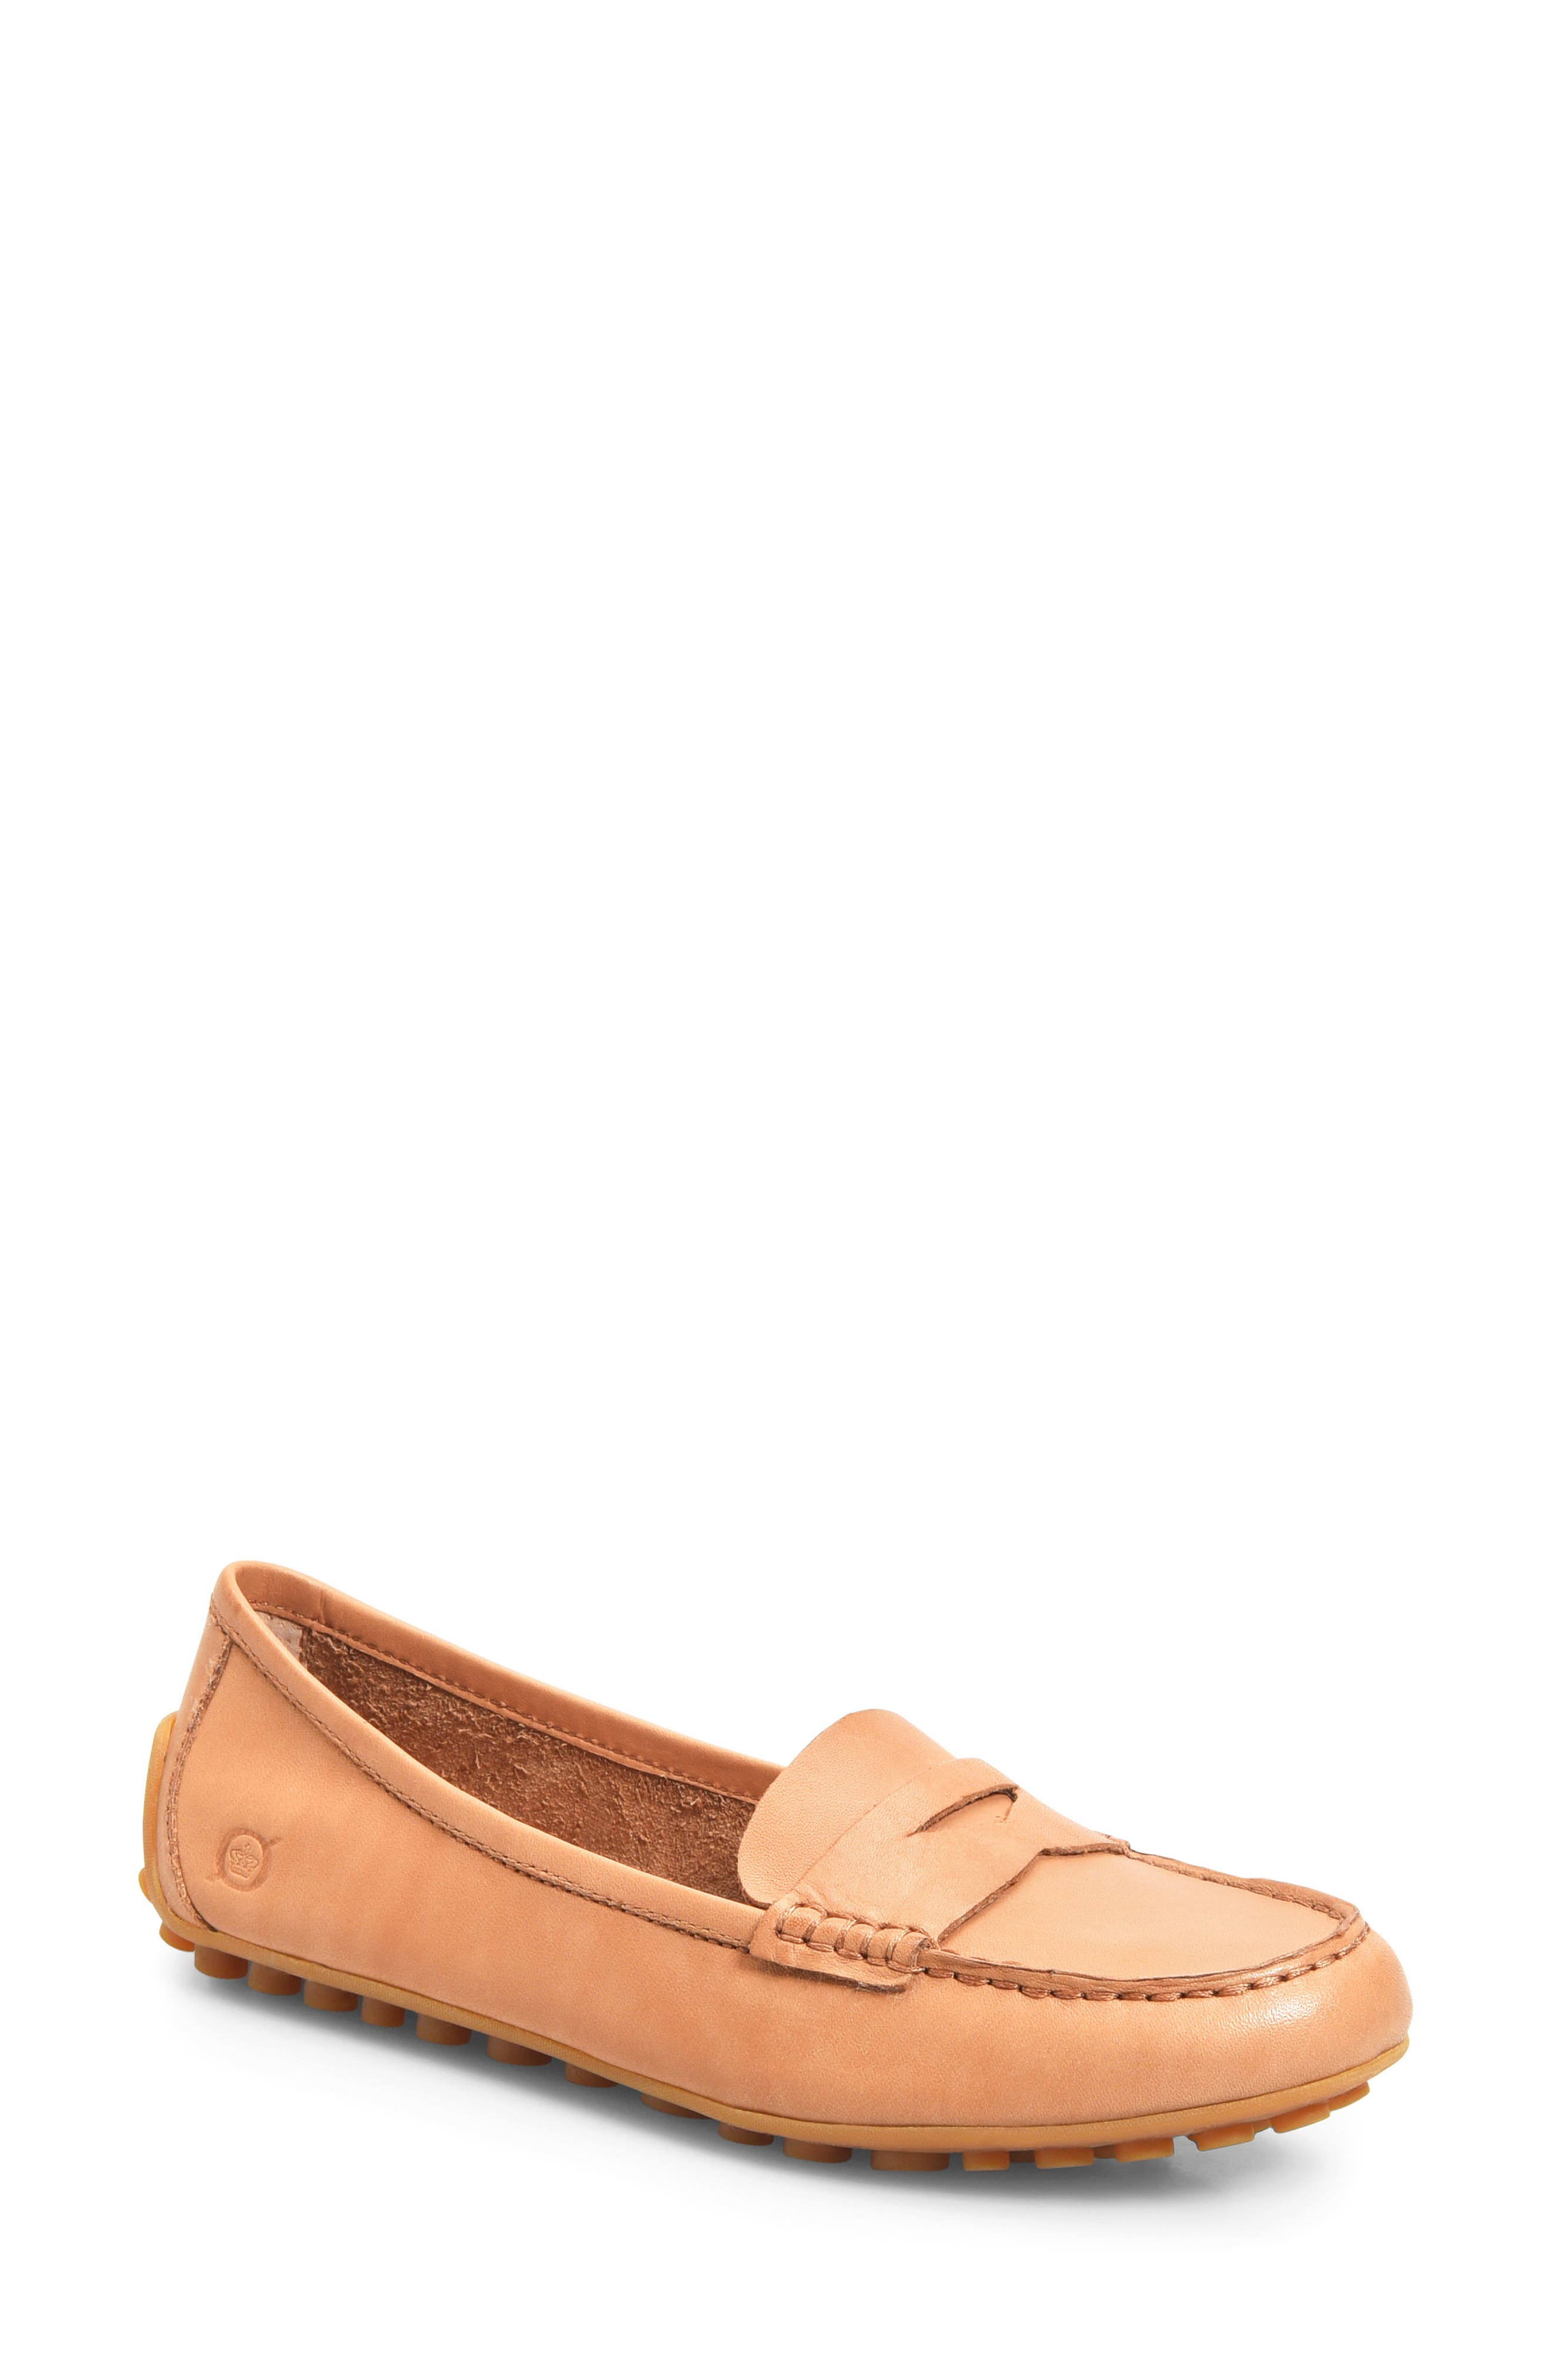 BØRN, Malena Driving Loafer, Main thumbnail 1, color, TAN BROWN LEATHER